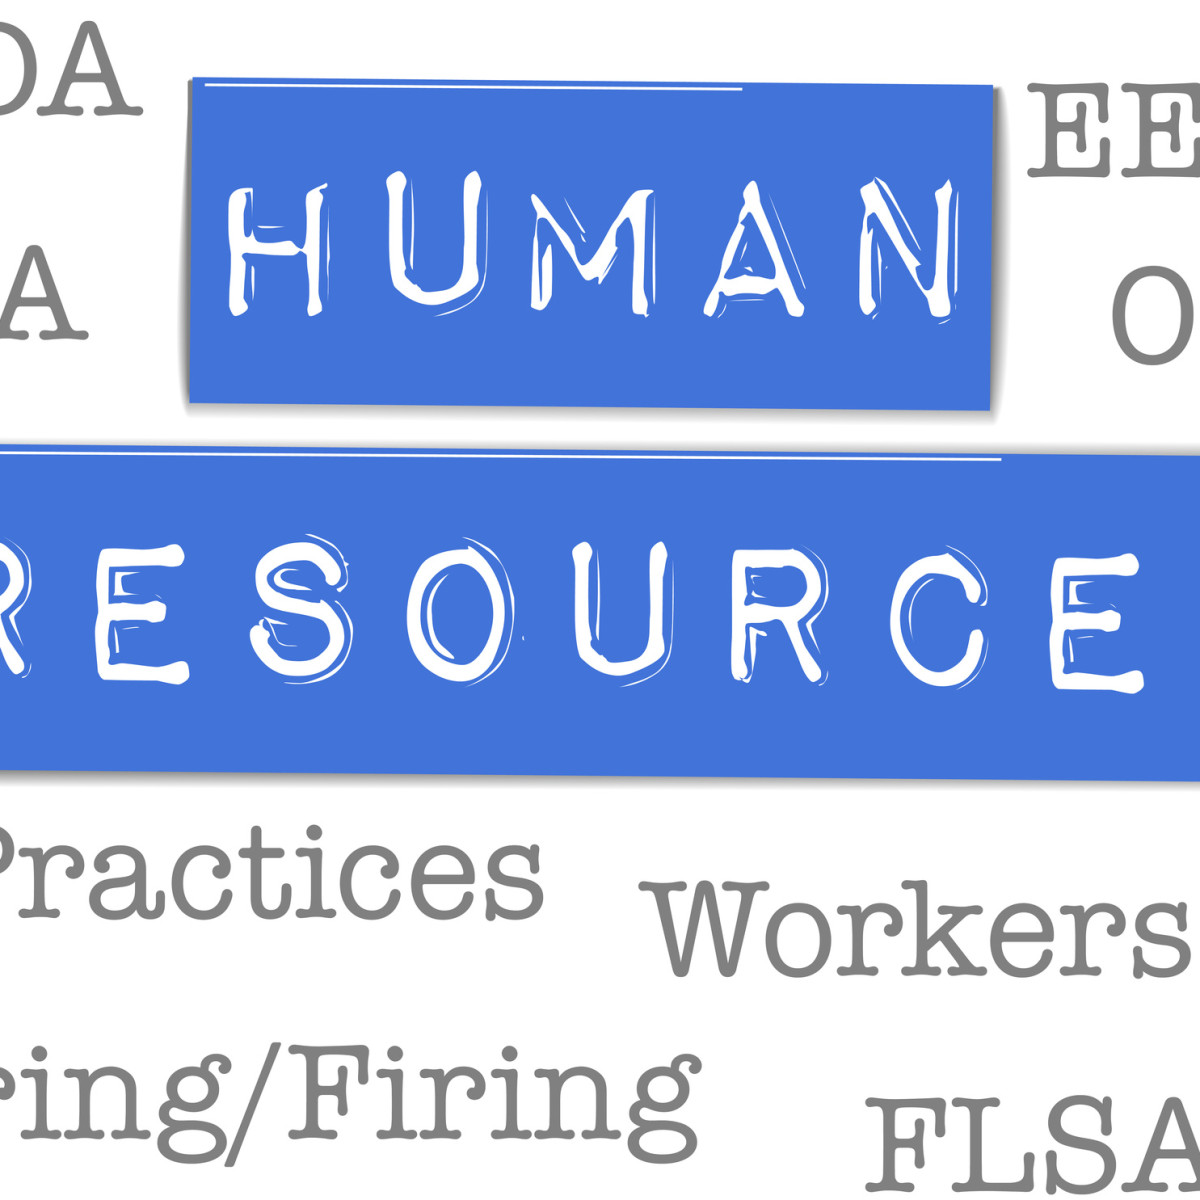 hr practices in insurance